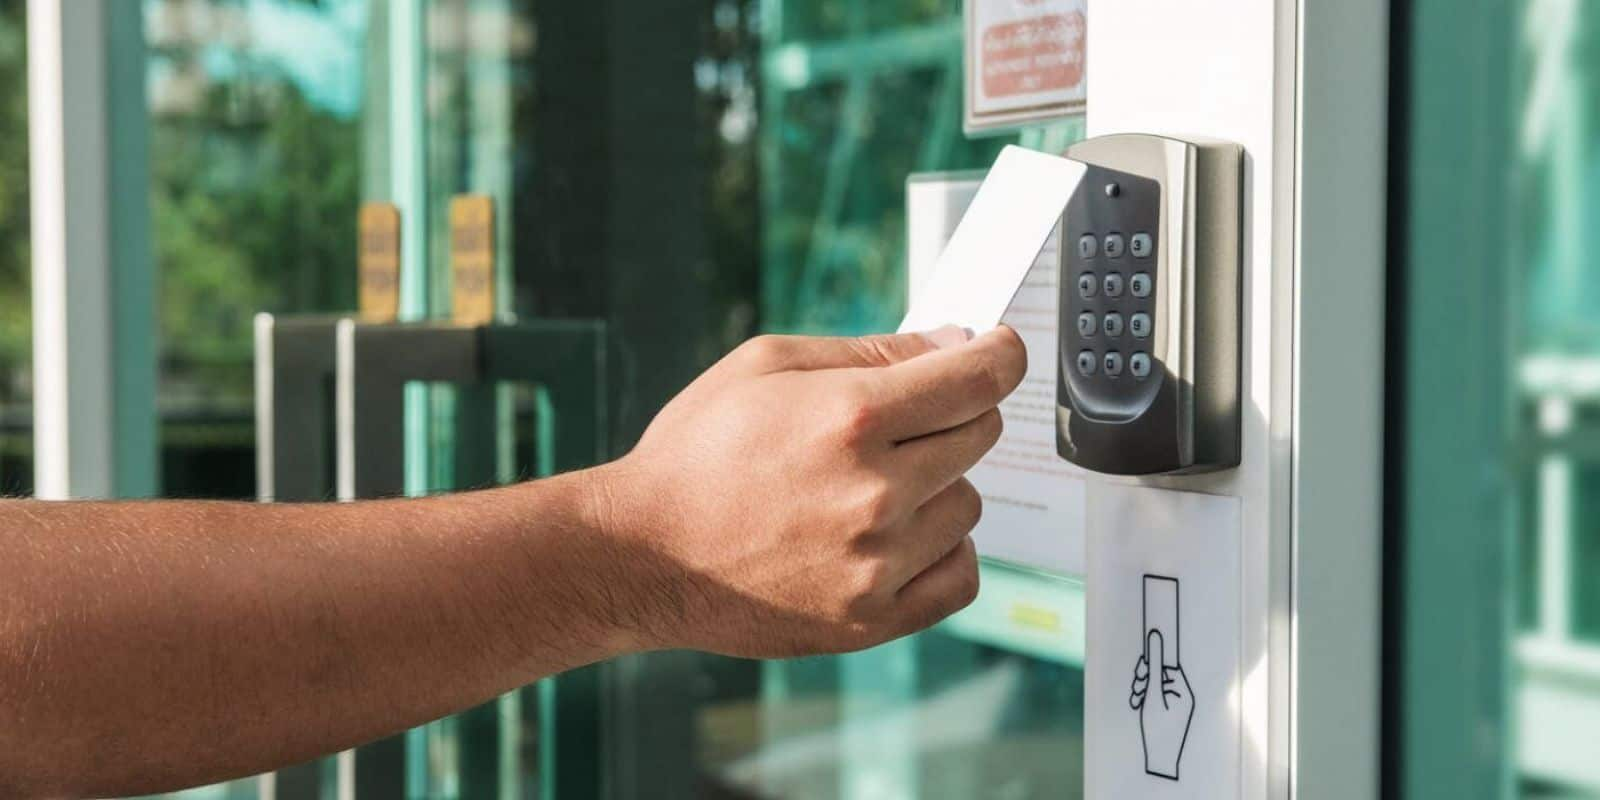 security systems for business access control solution cornerstone protection